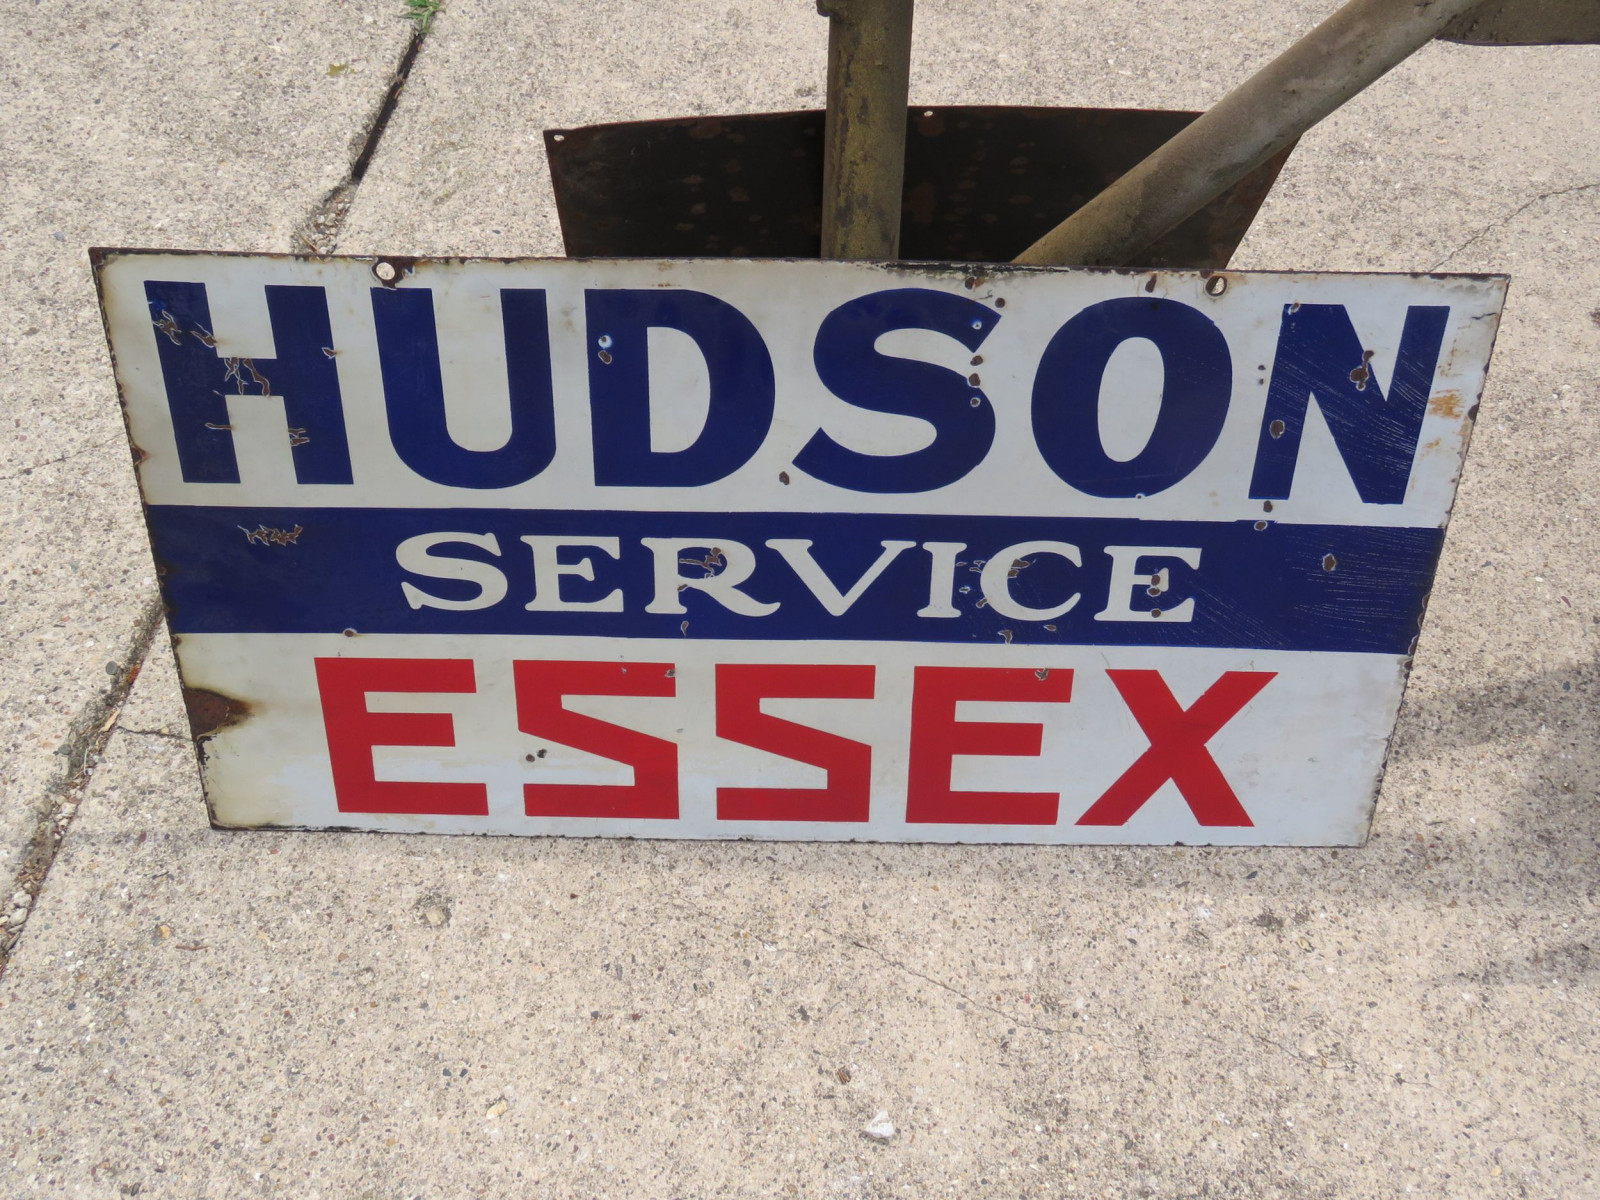 Hudson-Essex Porcelain Sign - Image 2